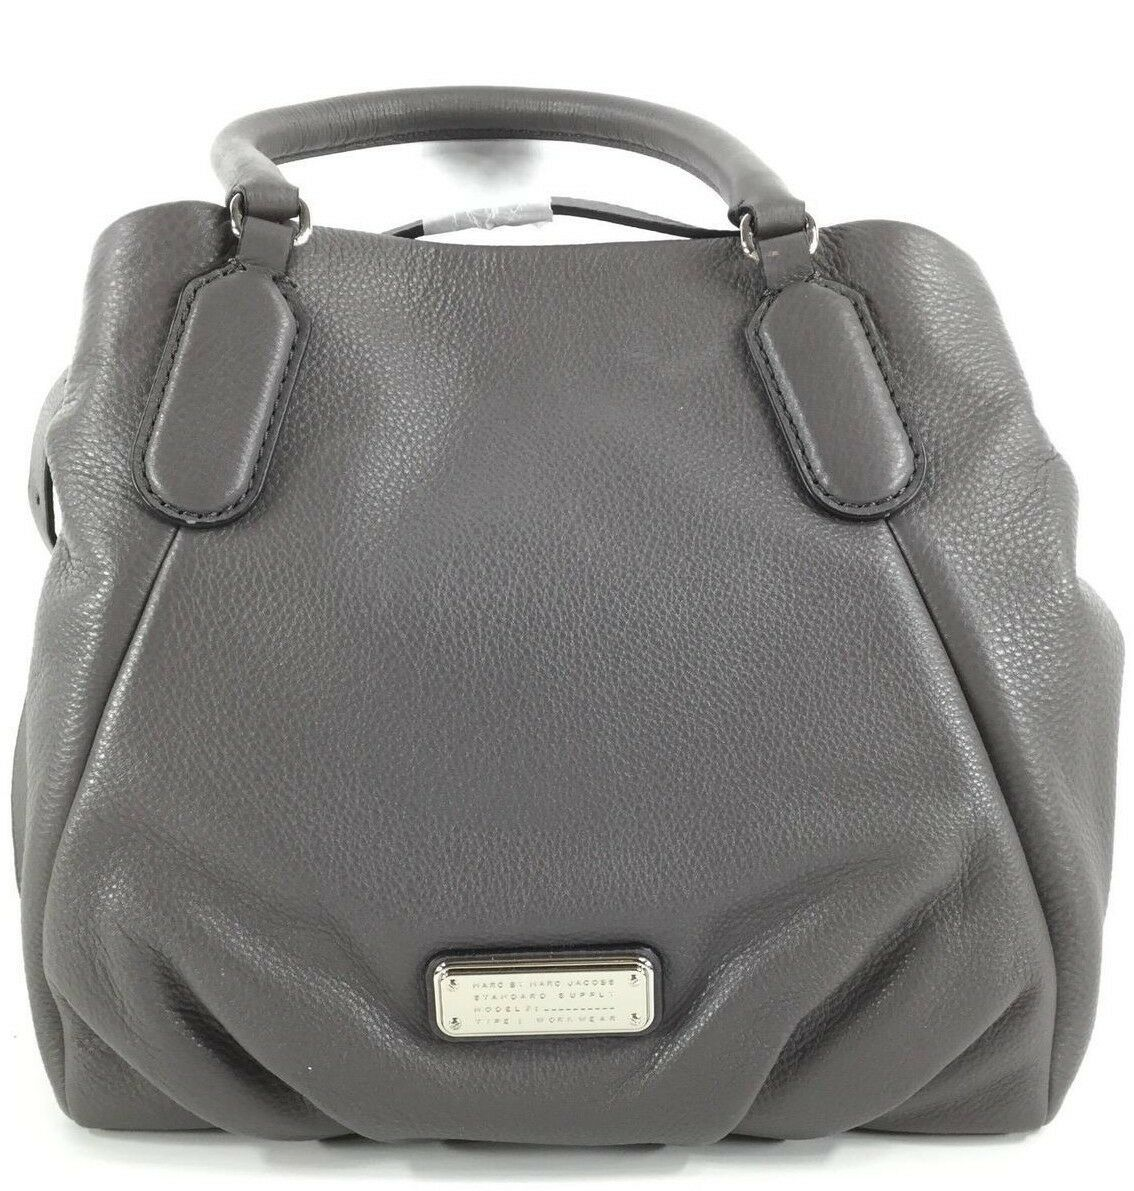 Primary image for $448 MARC JACOBS NEW Q FRAN GREY ITALIAN LEATHER SHOULDER TOTE BAG PURSE *NWT*